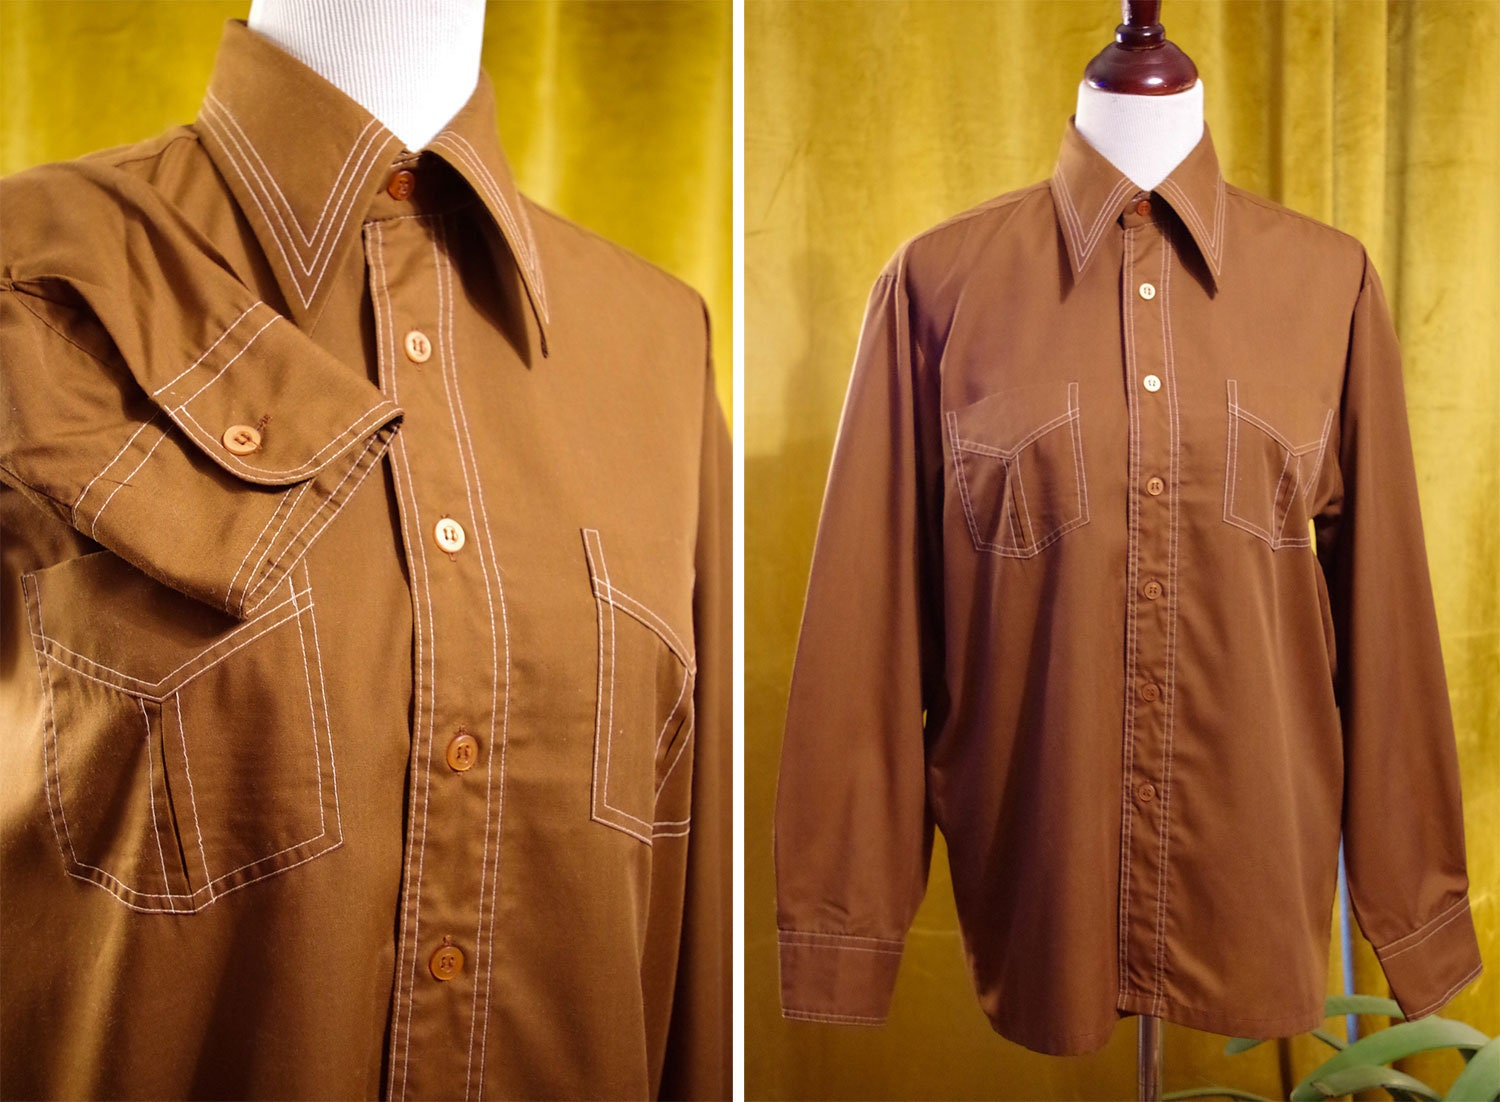 1970s Men's Shirt Styles – Vintage 70s Shirts for Guys Hot Chocolate 1970s Mens Vintage Brown Button Down Shirt with Long Sleeves  White Stitching  By Jc Penney Size Medium 15-15 12 $44.99 AT vintagedancer.com